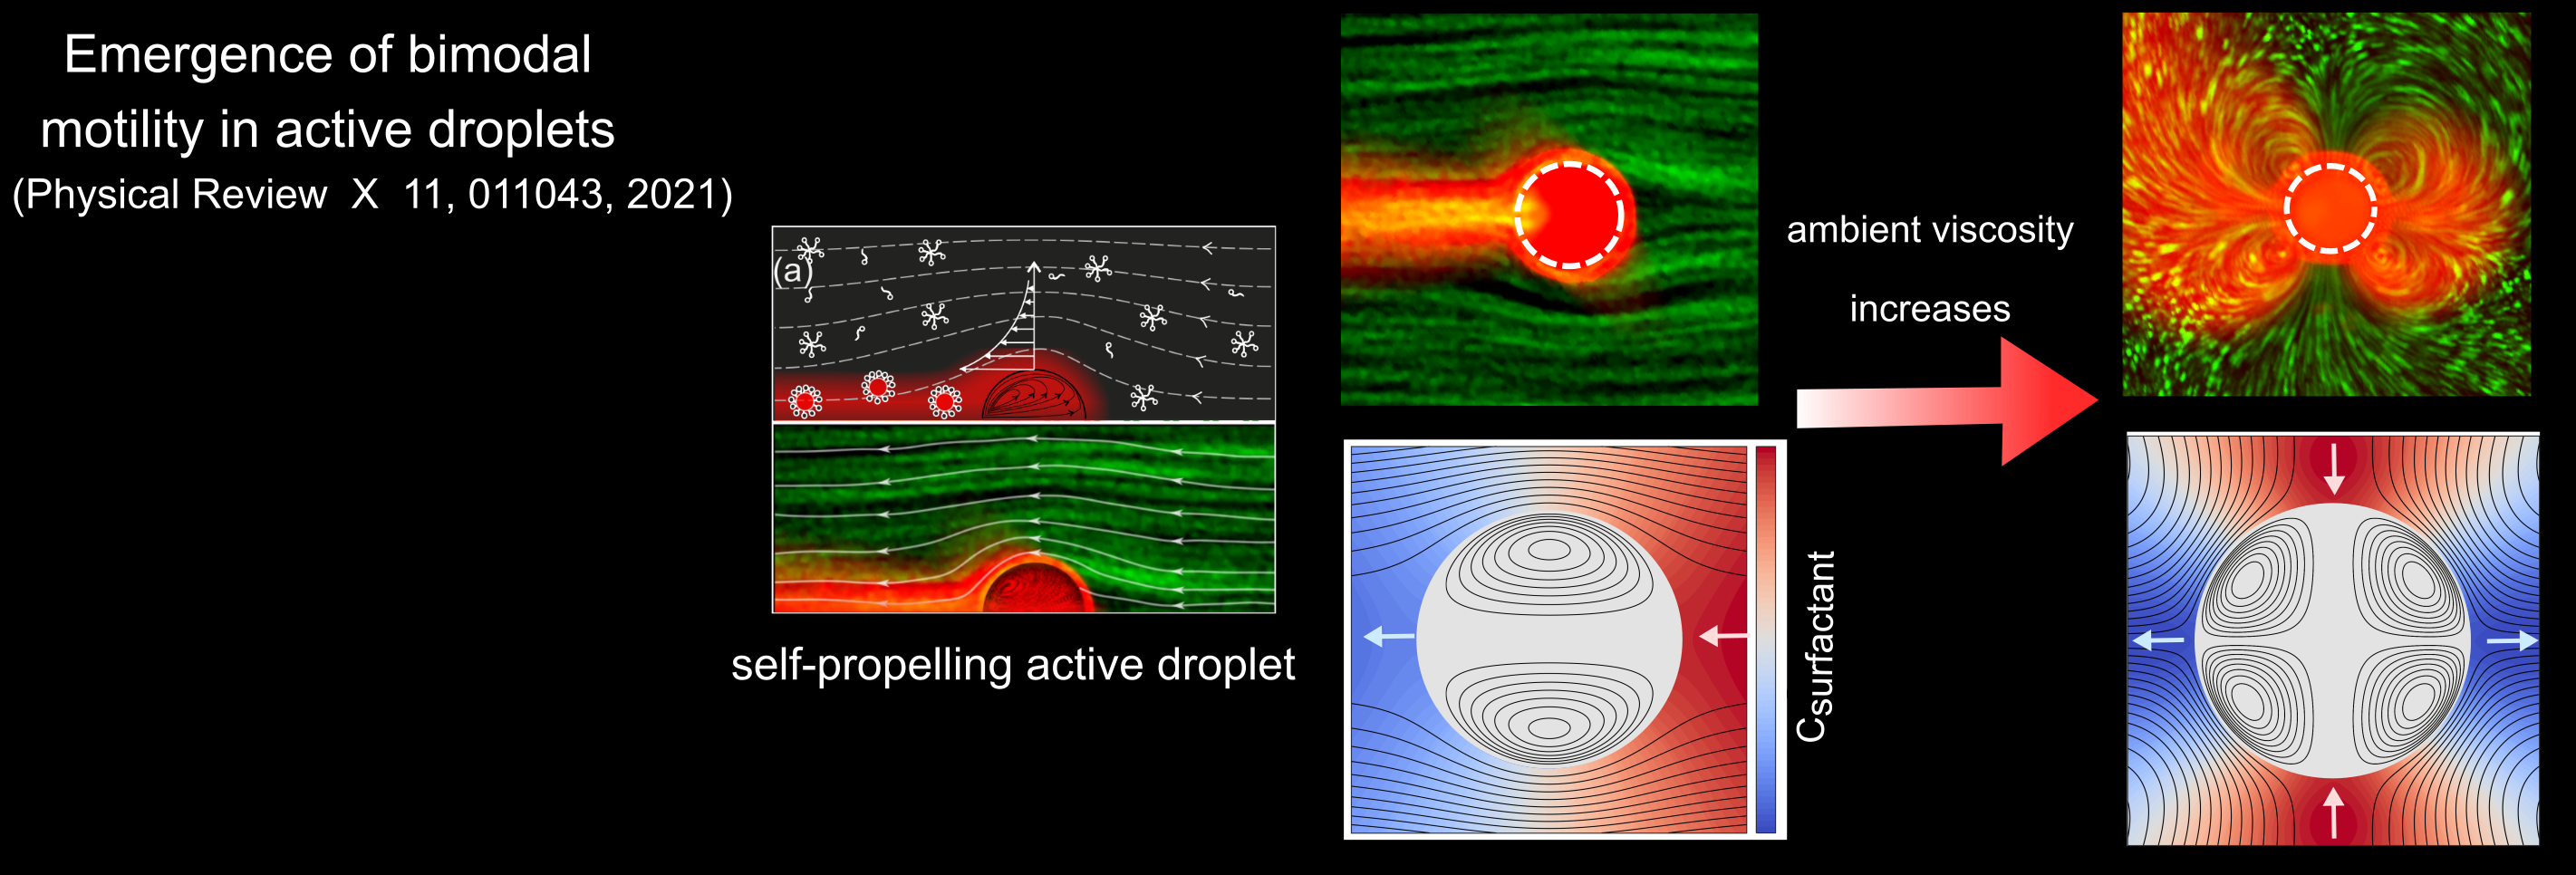 Emergence of bimodal motility in active droplets